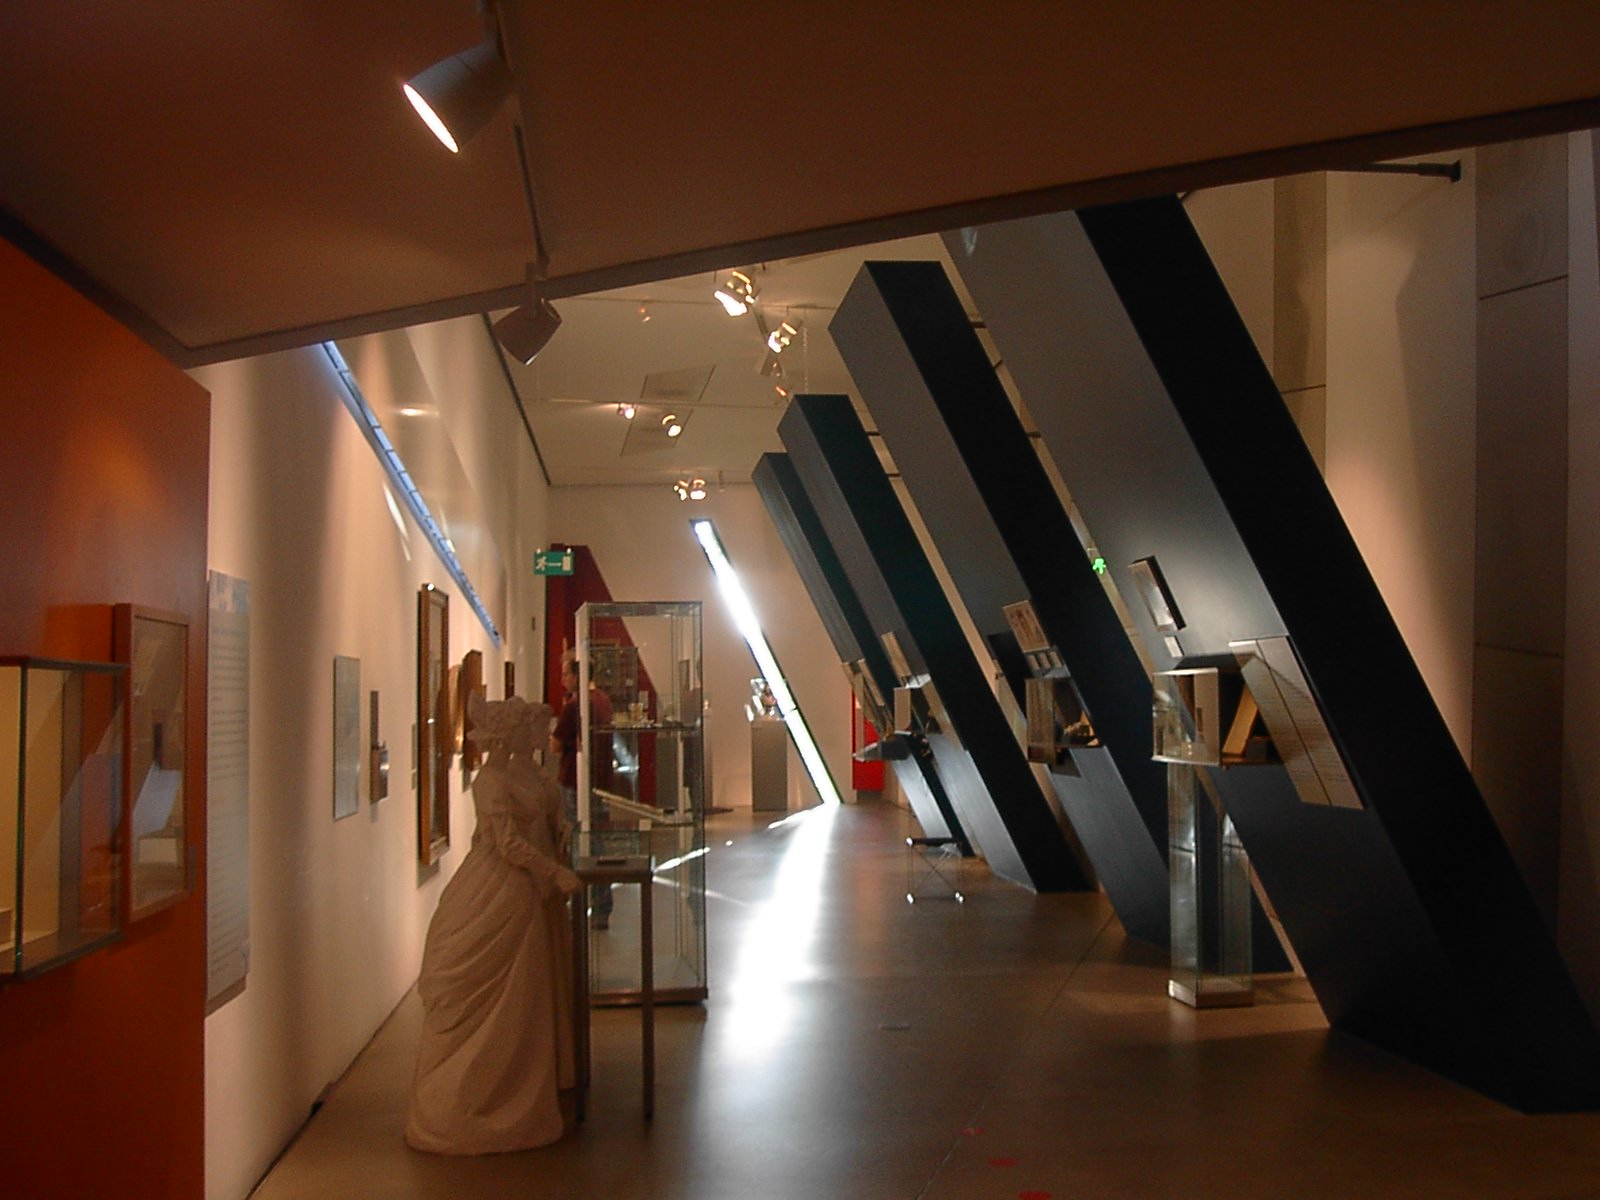 File:Exhibit-view-Jewish- Museum-Berlin.JPG - Wikimedia ...